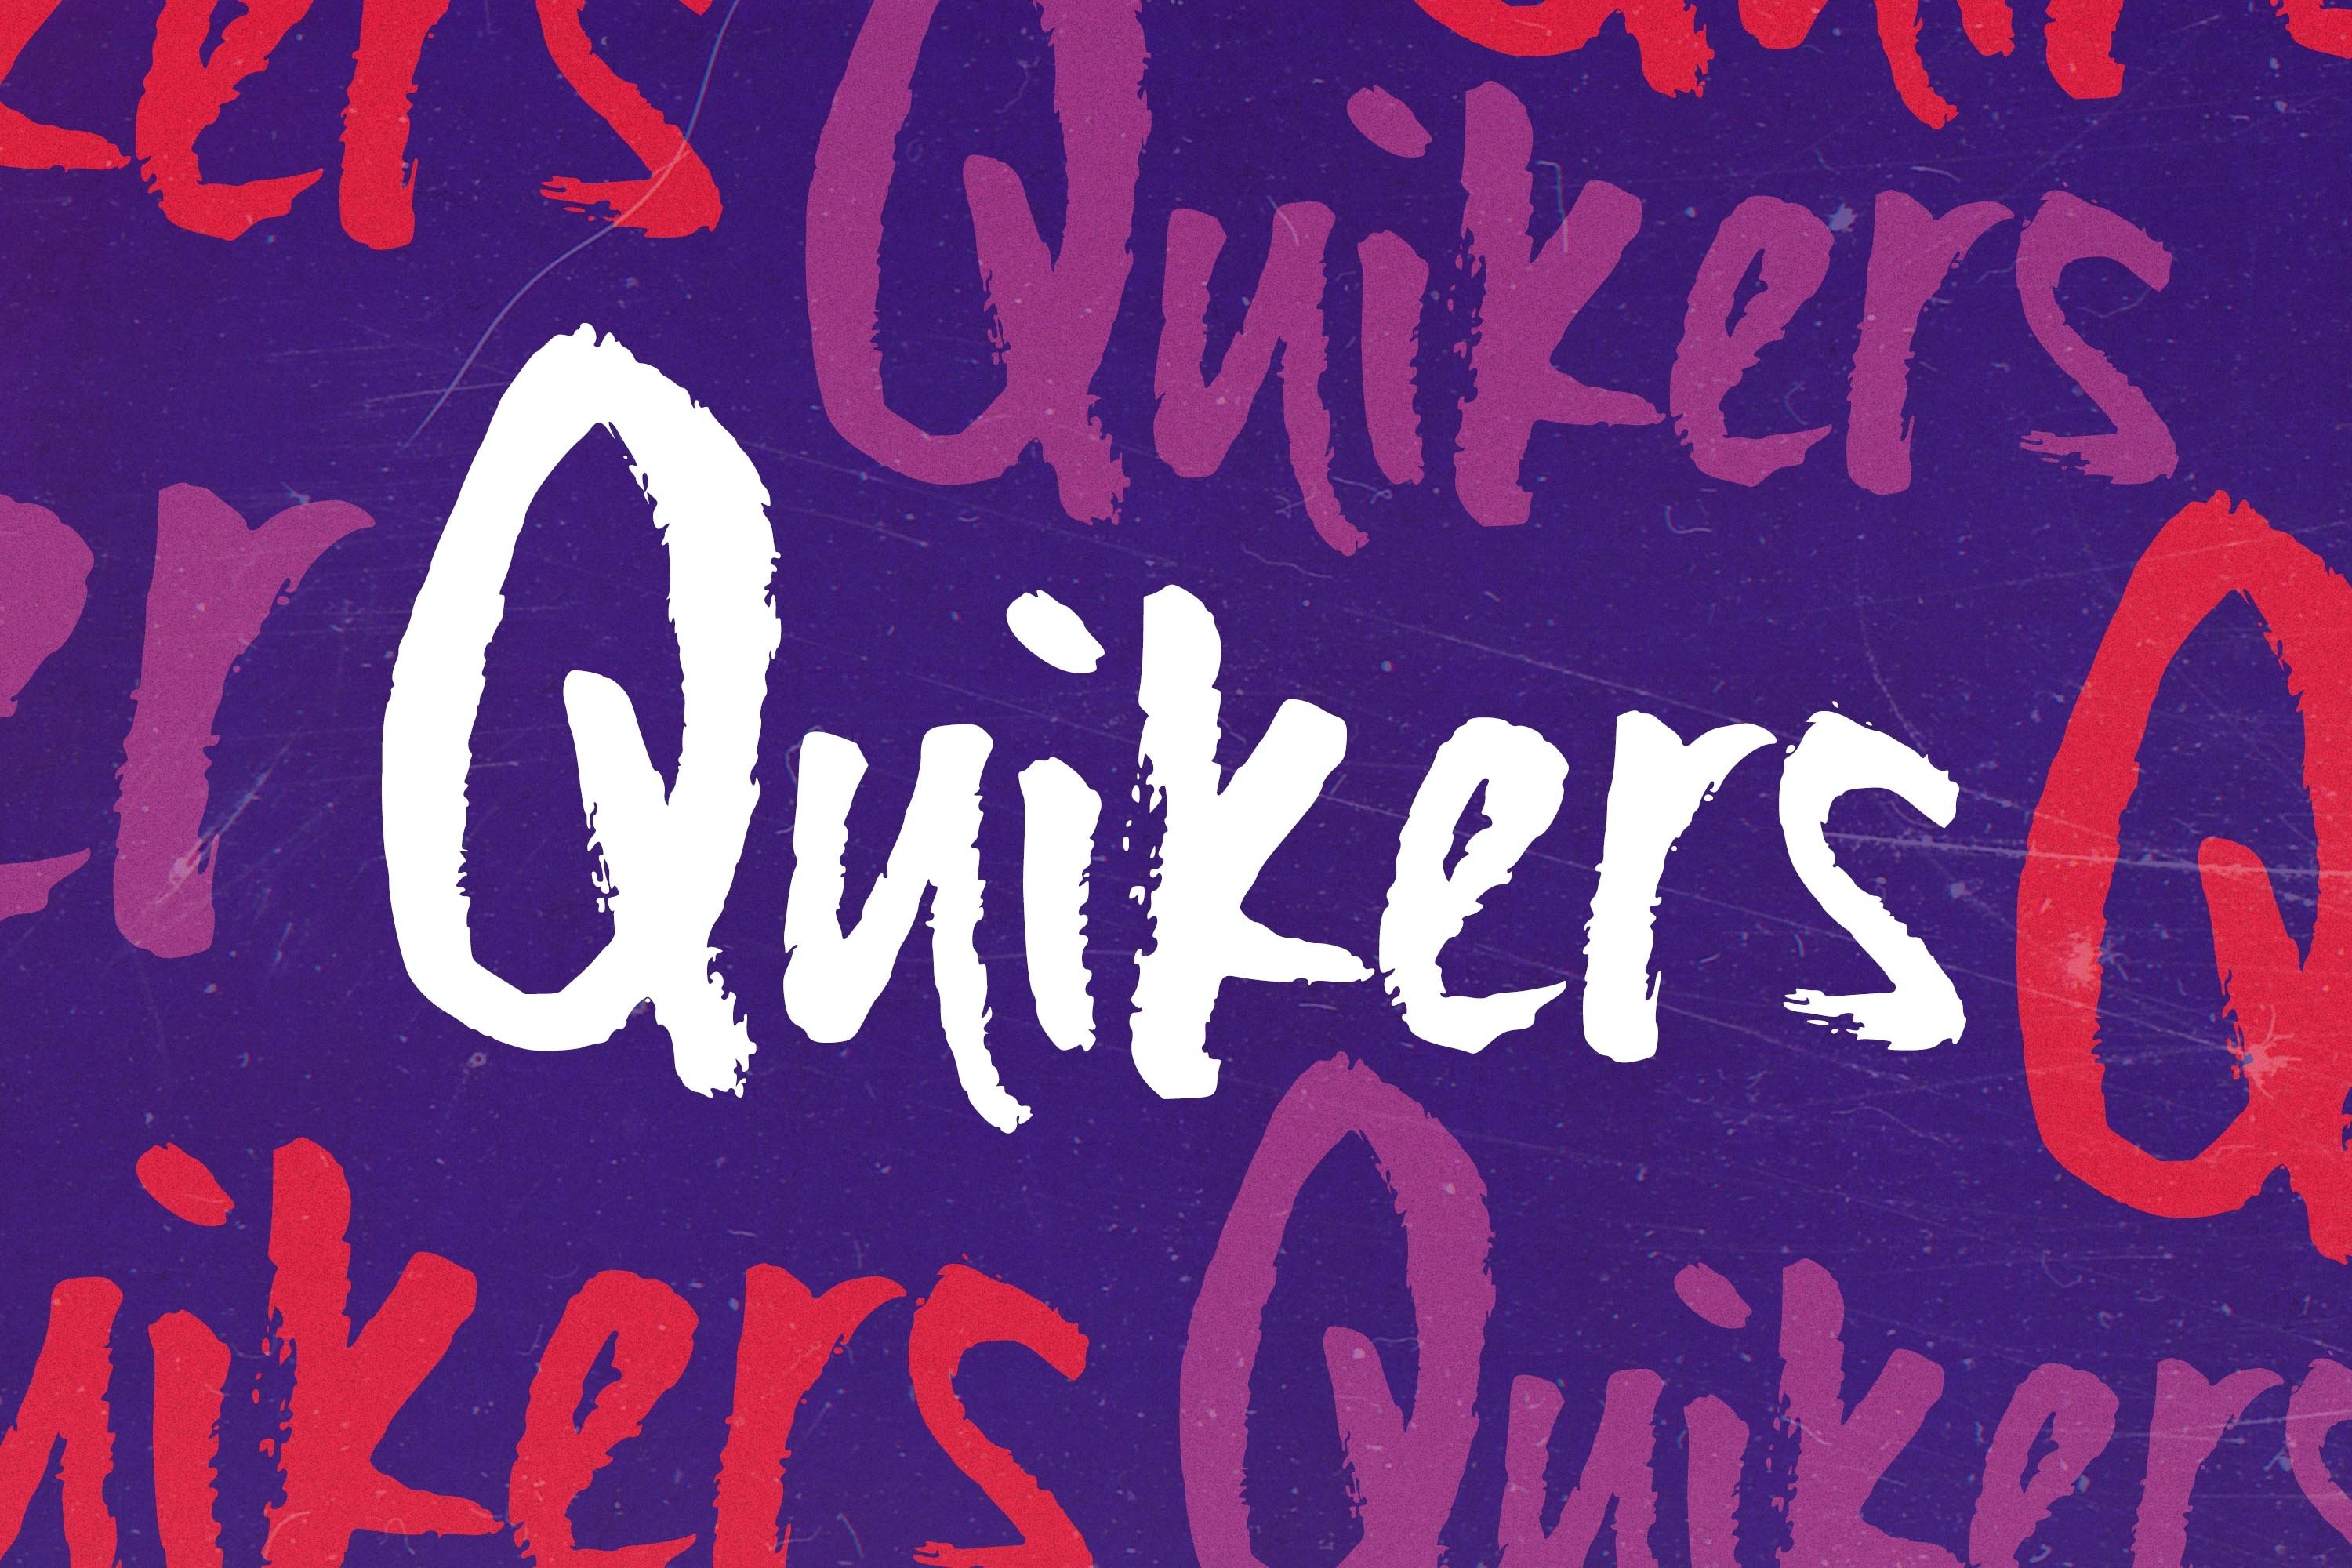 Quikers - Brush Font example image 1